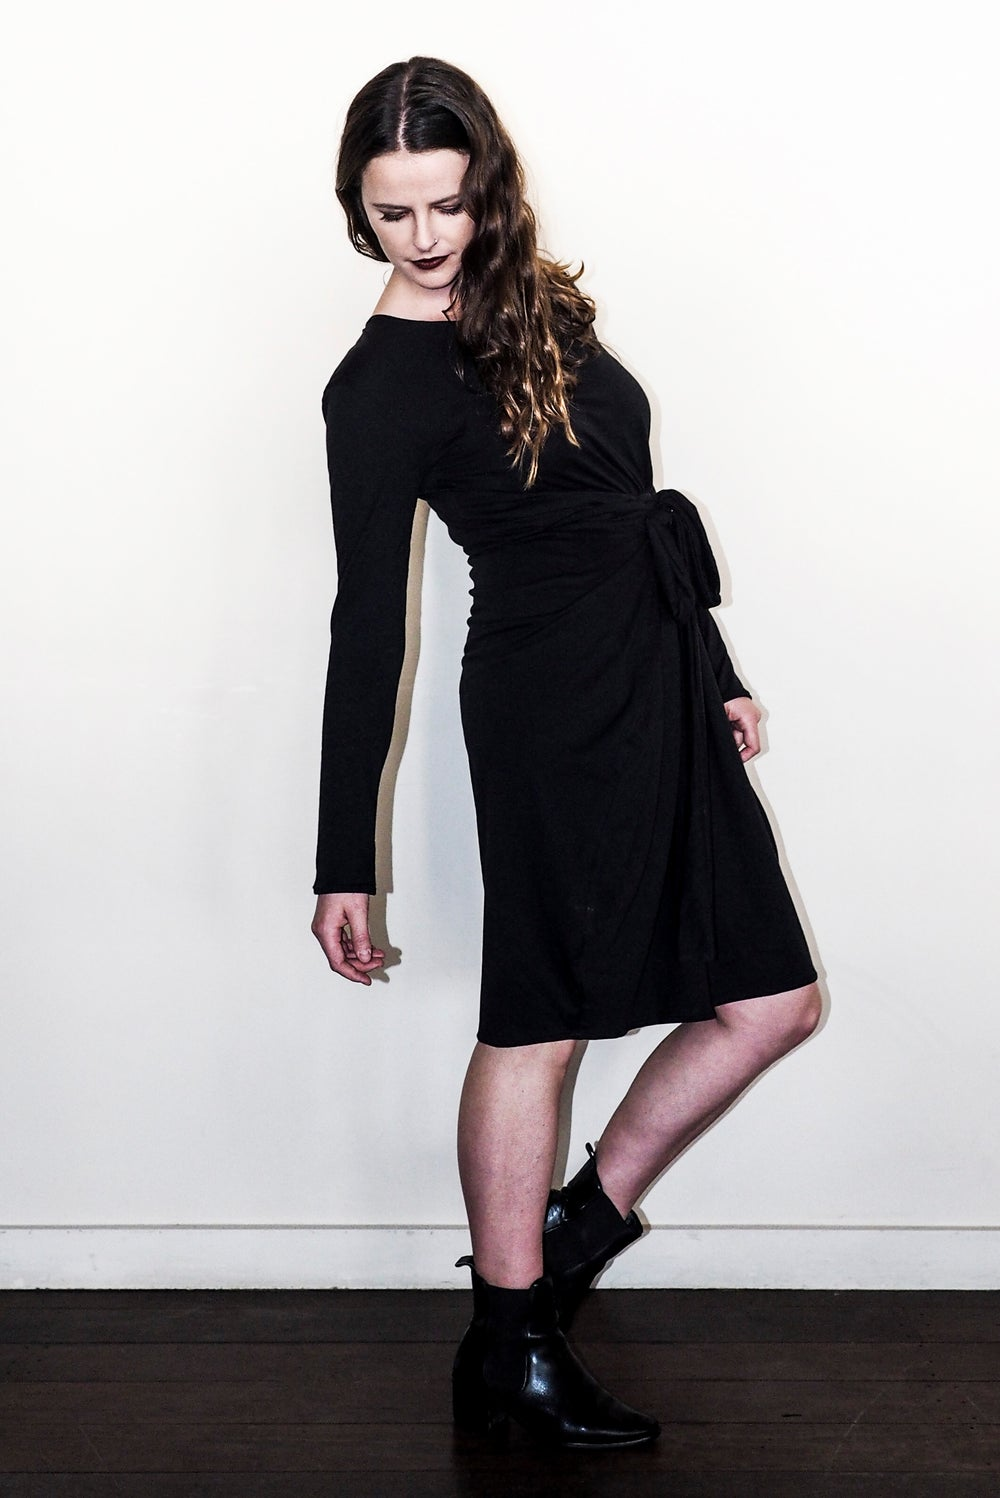 Image of The Winter Ribb Dress - Organic Black Cotton